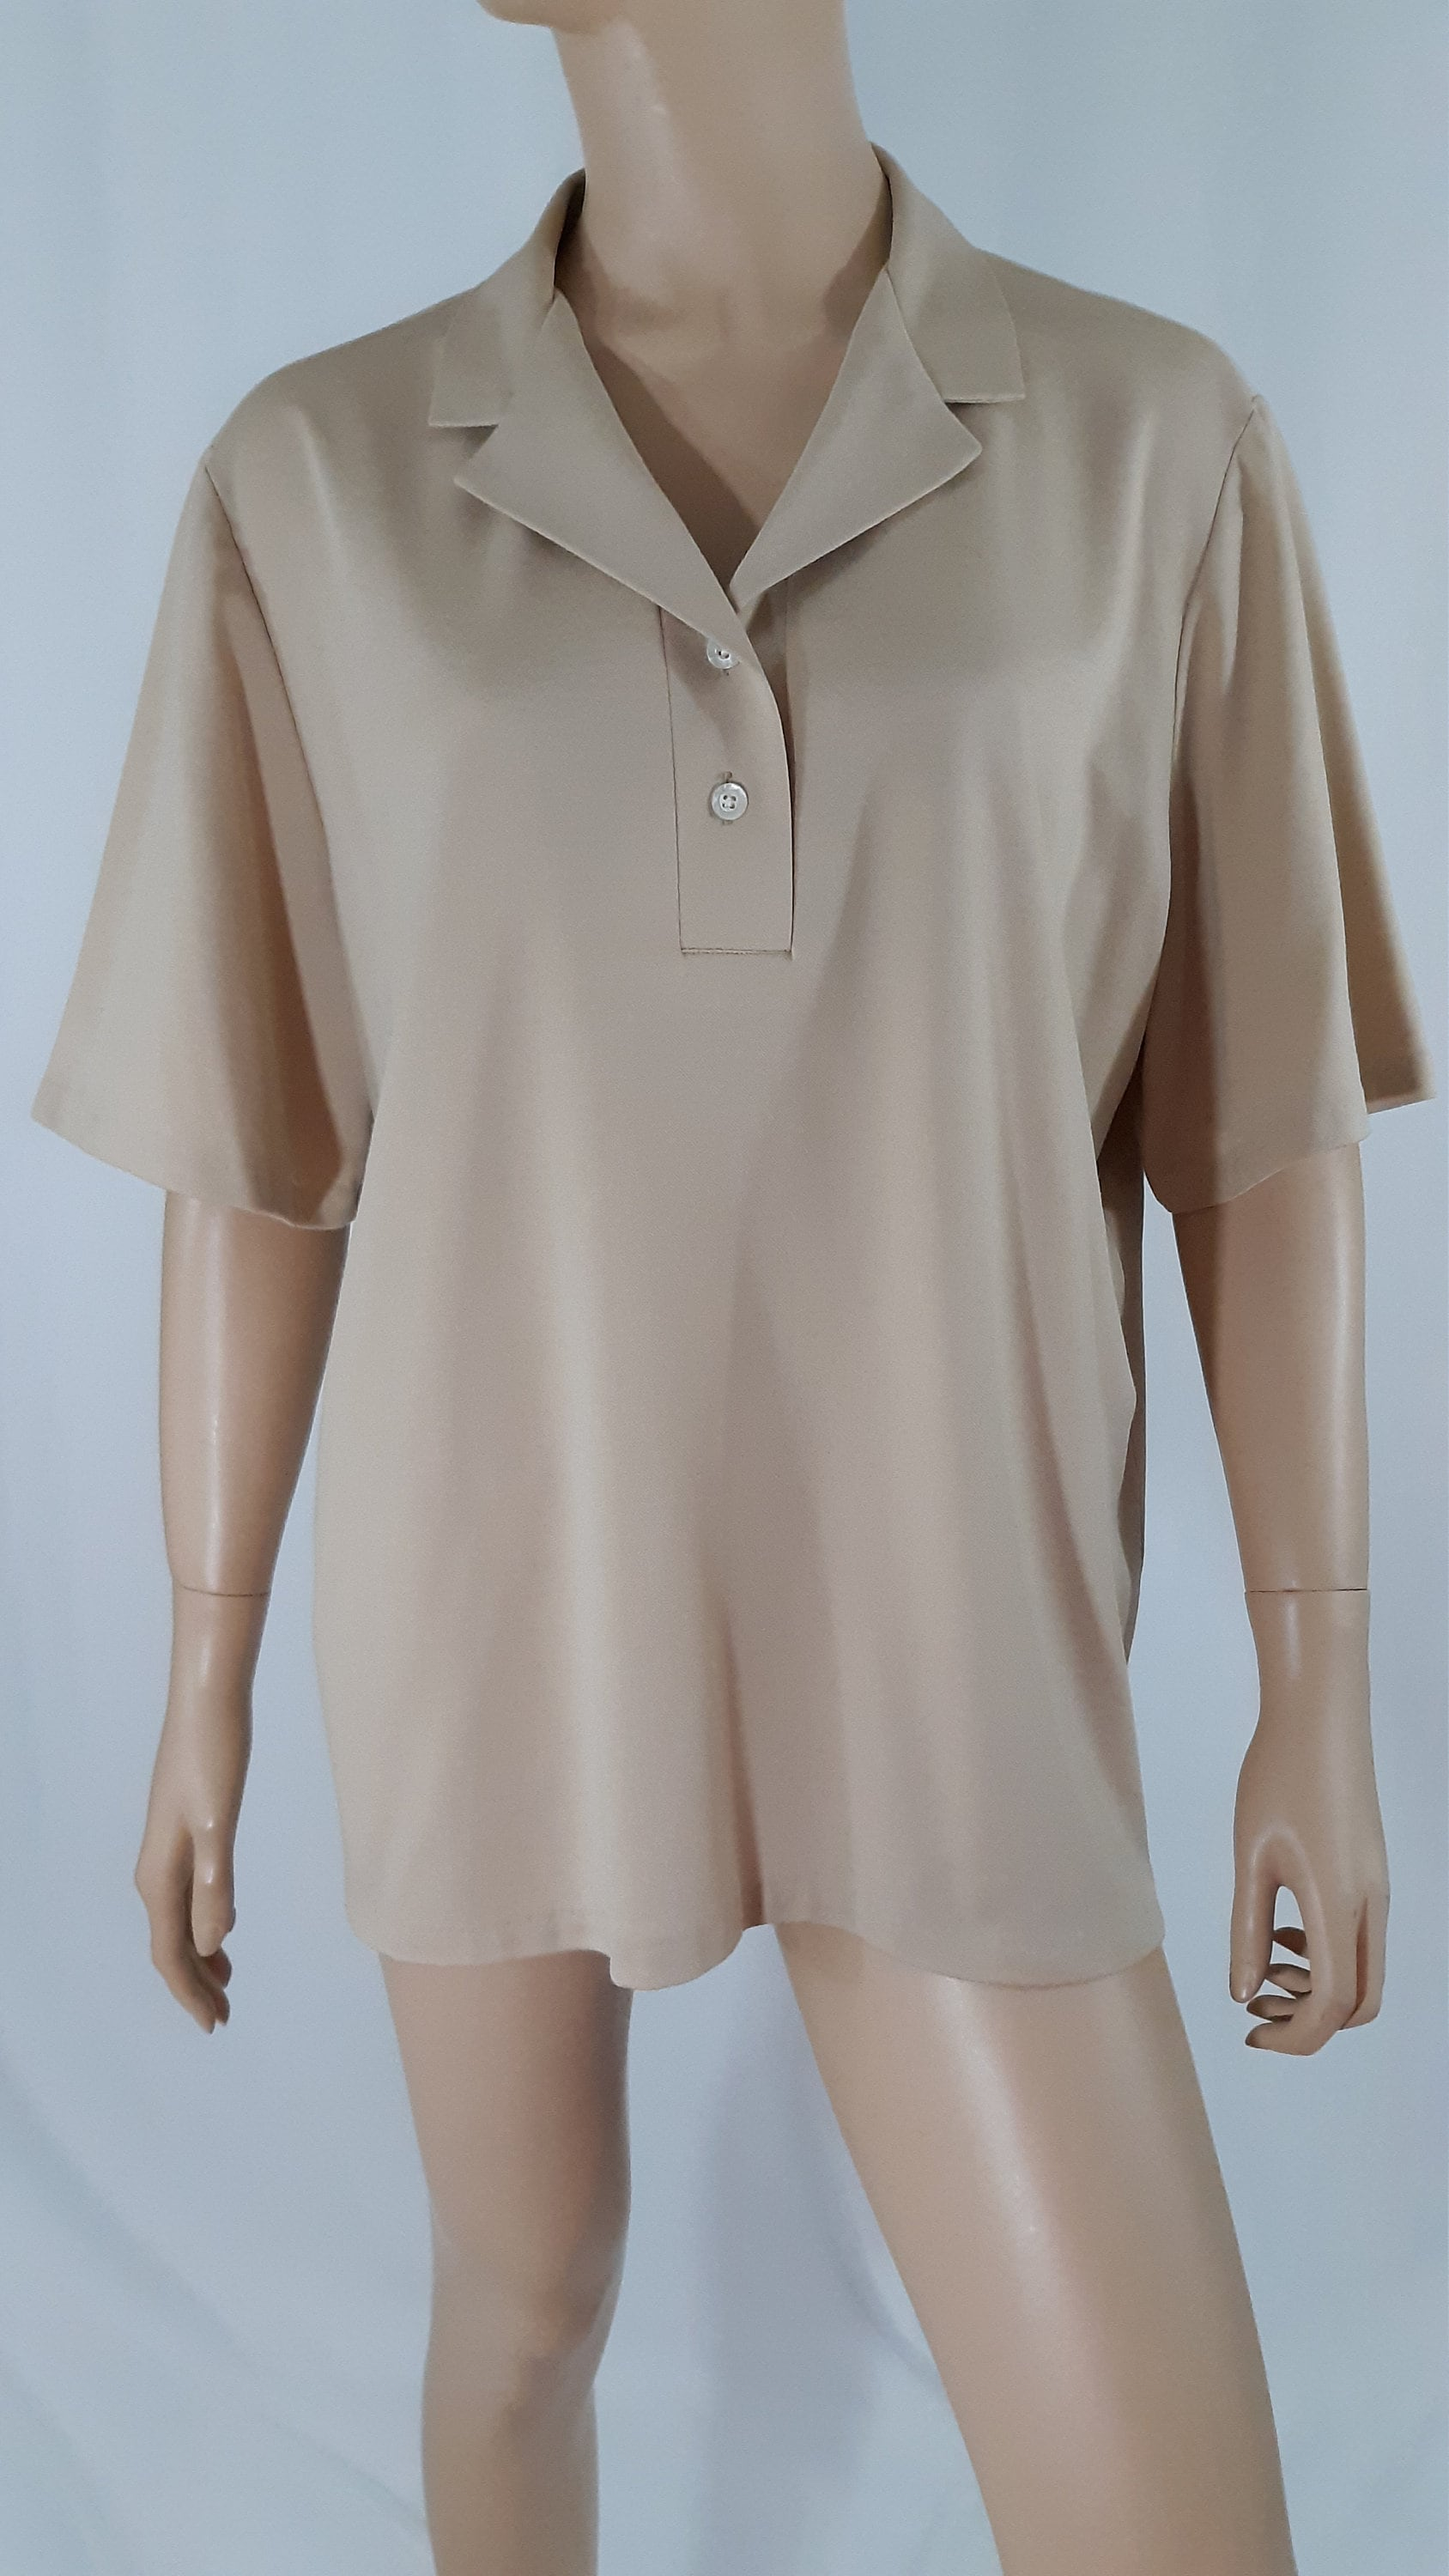 1970s Mens Shirt Styles – Vintage 70s Shirts for Guys 70s 80s Mens Shirt Solid Biege Short Sleeve Pullover Classic Leisure Made in Usa Excellent Like New Crisp Vintage By Frayne Size M $3.50 AT vintagedancer.com